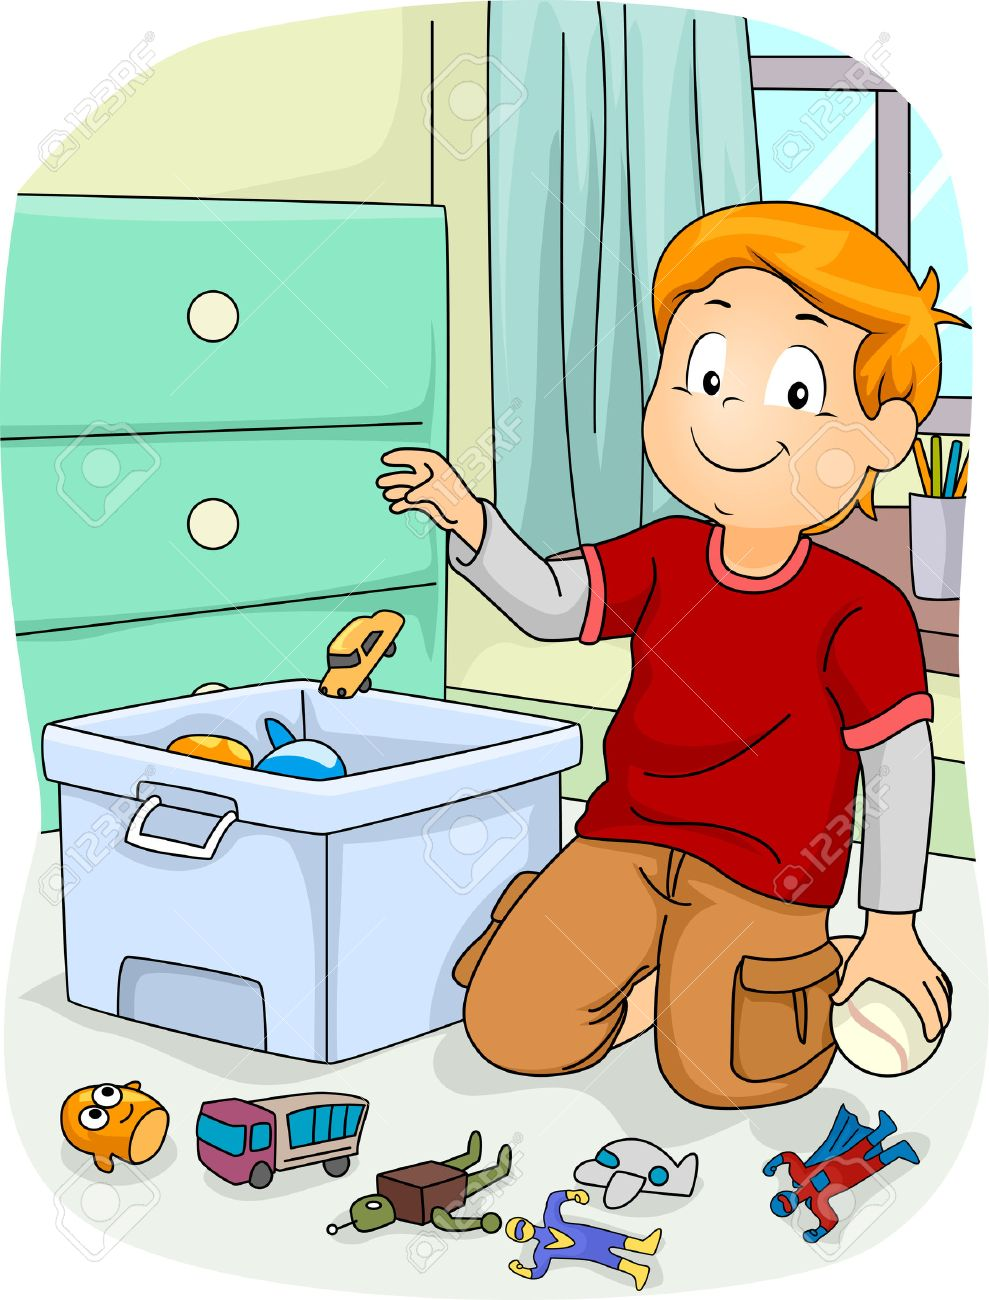 Illustration of a Boy doing Household Chores by Putting His Toys Inside a Store Box - 55304208